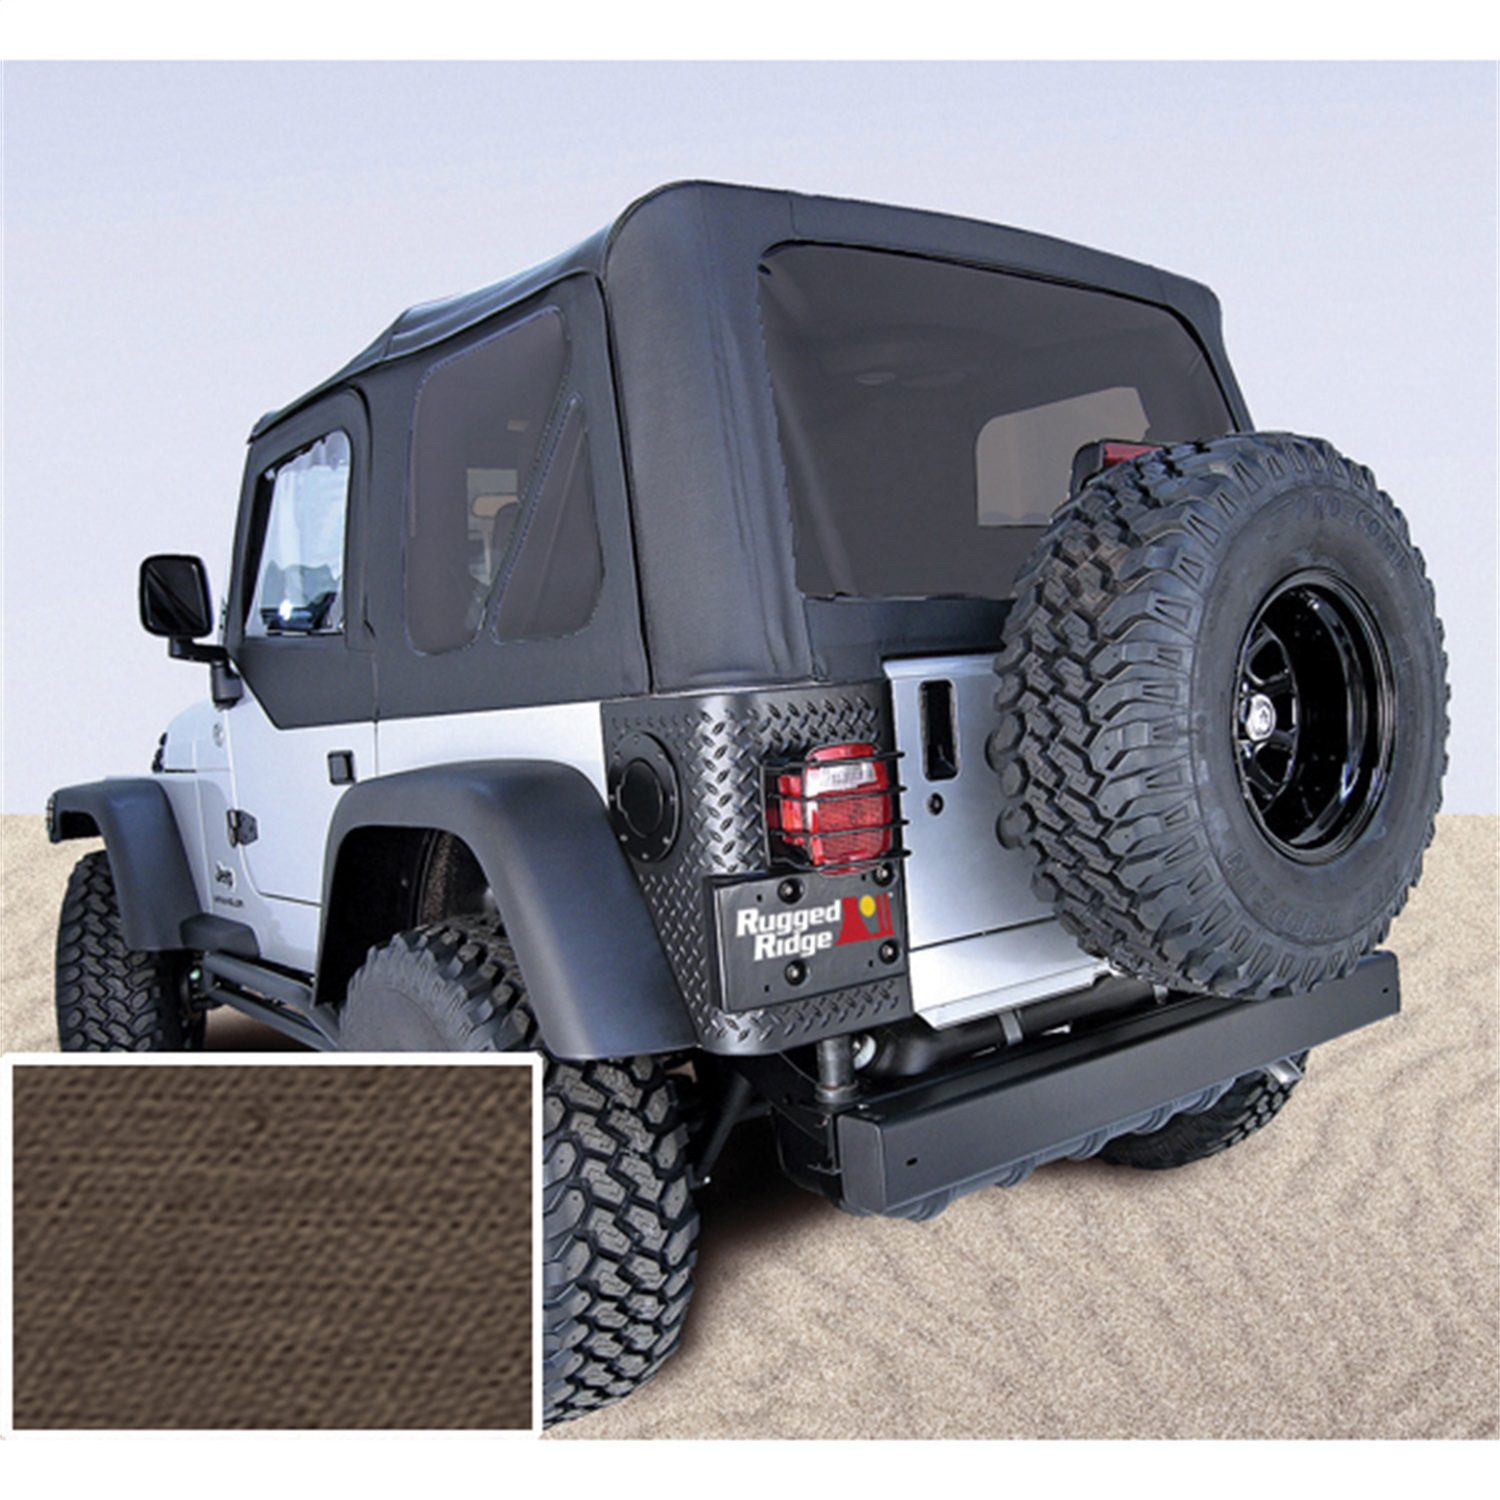 Rugged Ridge 13730.36 Replacement Soft Top Fits 03-06 Wrangler (TJ)